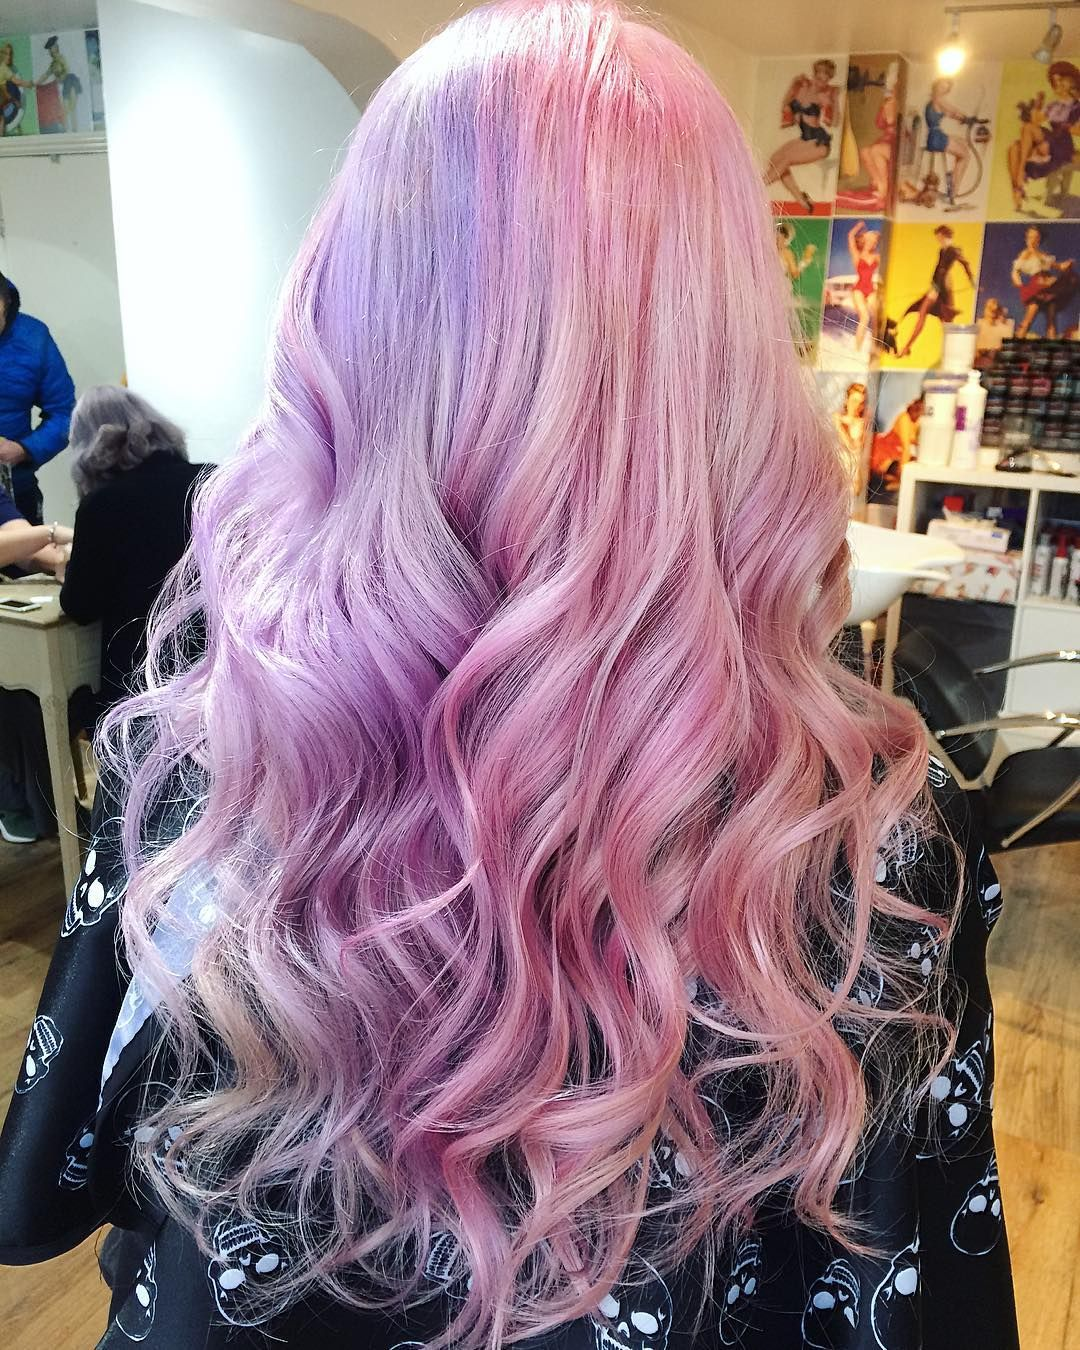 Candy Floss Coloured With Manicpanicnyc Manicpanic Official Manicpanic Uk Halfandhalfhair Pretty Sal Pink Ombre Hair Half And Half Hair Color Your Hair